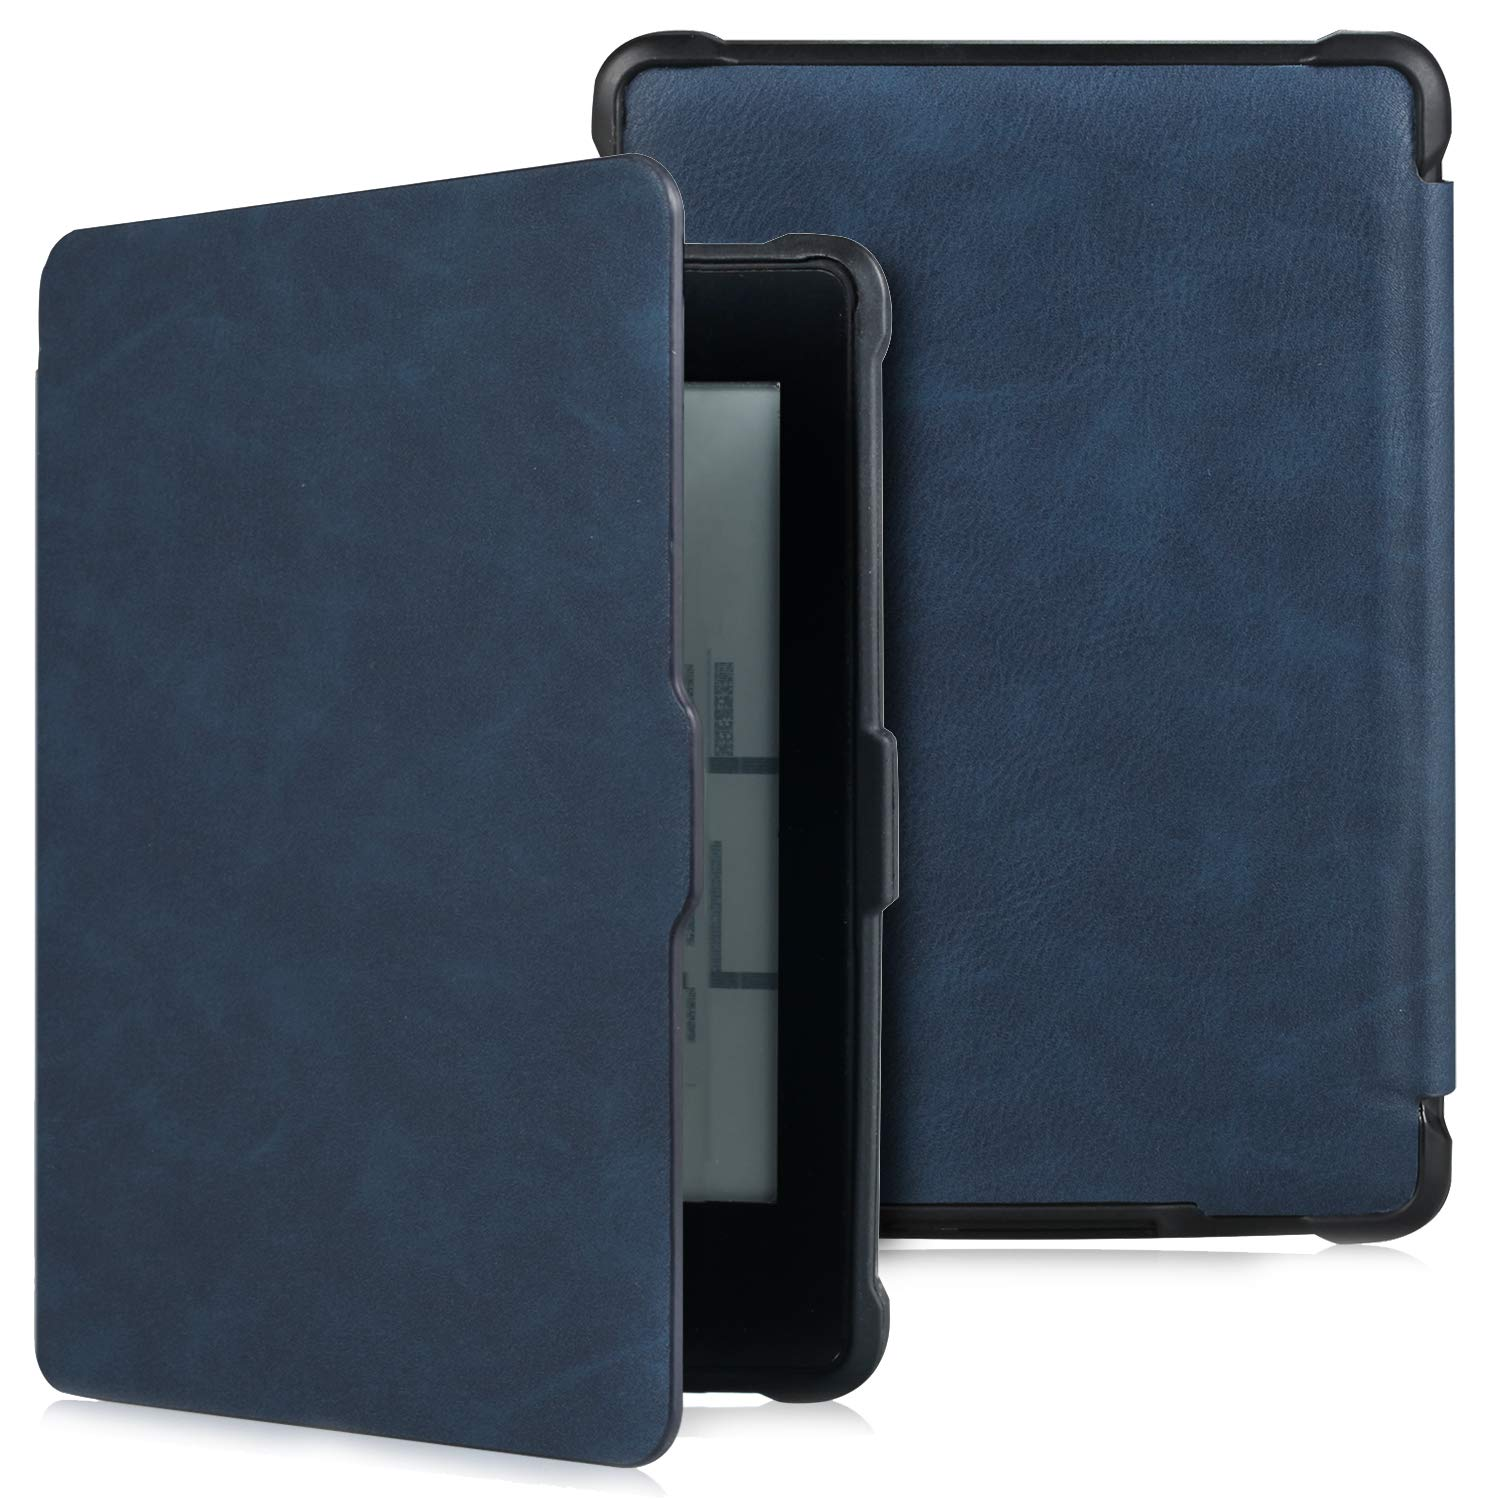 Case for Kindle Paperwhite -Premium Thinnest and Lightest PU Leather Cover With Auto Wake/Sleep for Amazon All-New Kindle Paperwhite (Fits 2012, 2013, 2015 Versions) Navy Blue by Genetic.